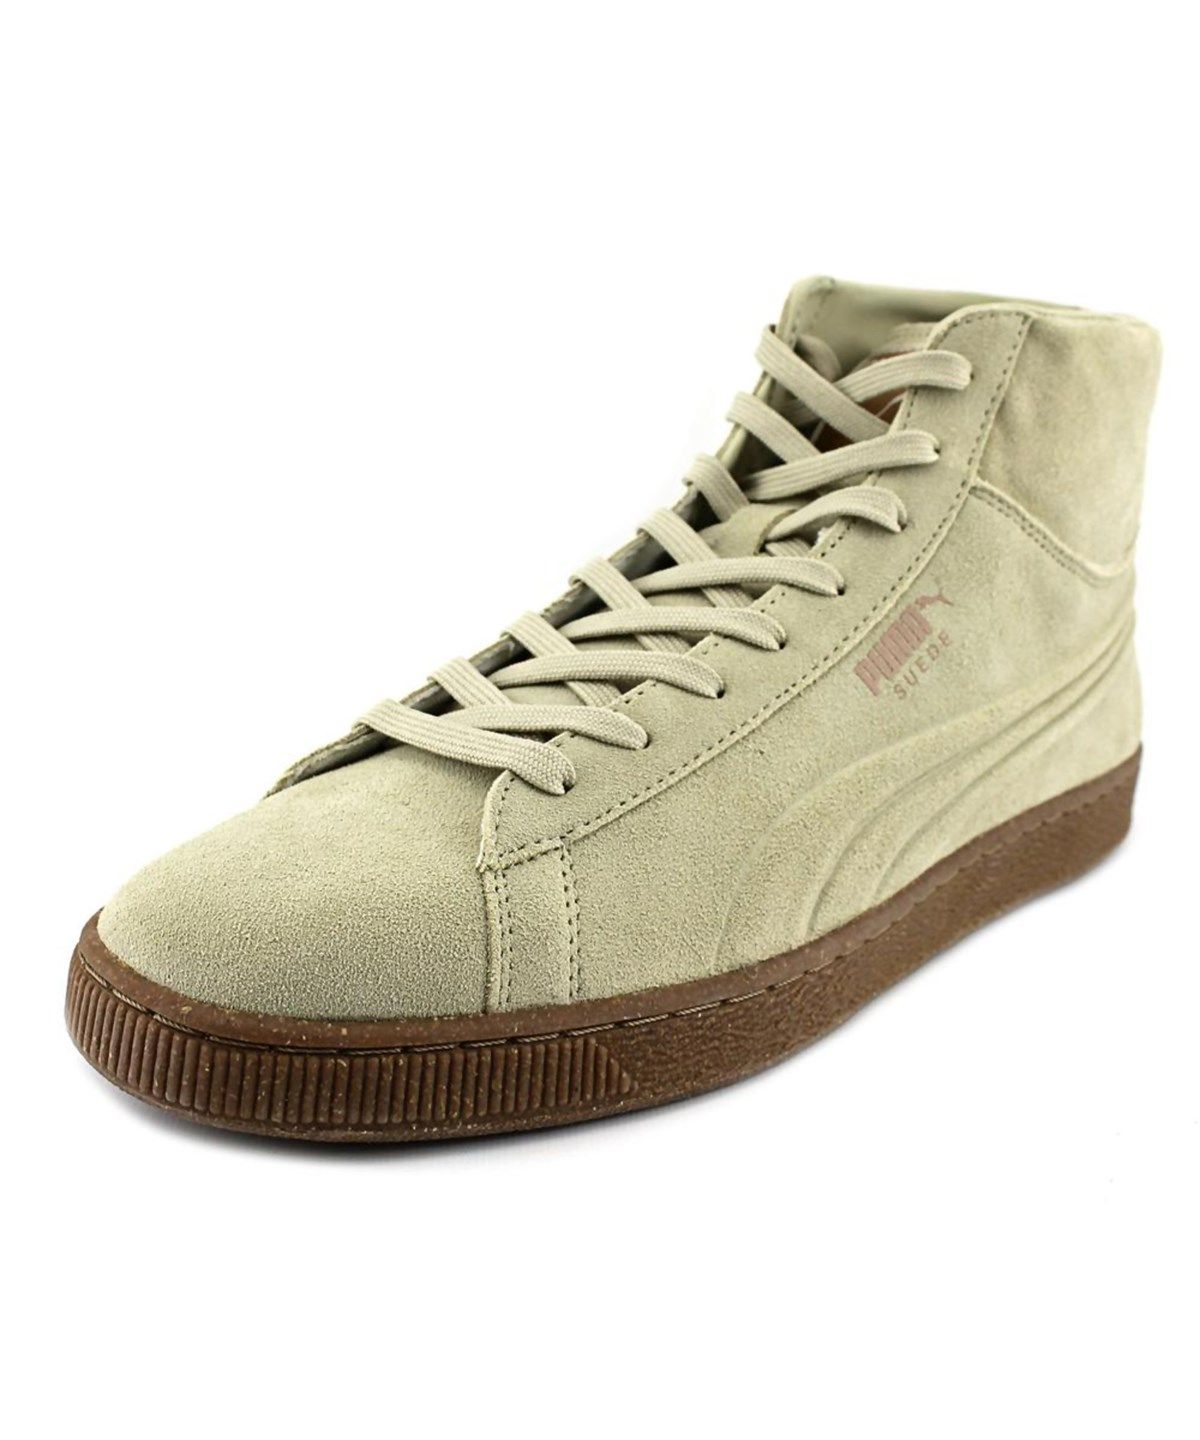 4091e44cc859 PUMA Puma Suede Mid Emboss Men Round Toe Suede Tan Sneakers .  puma  shoes   sneakers